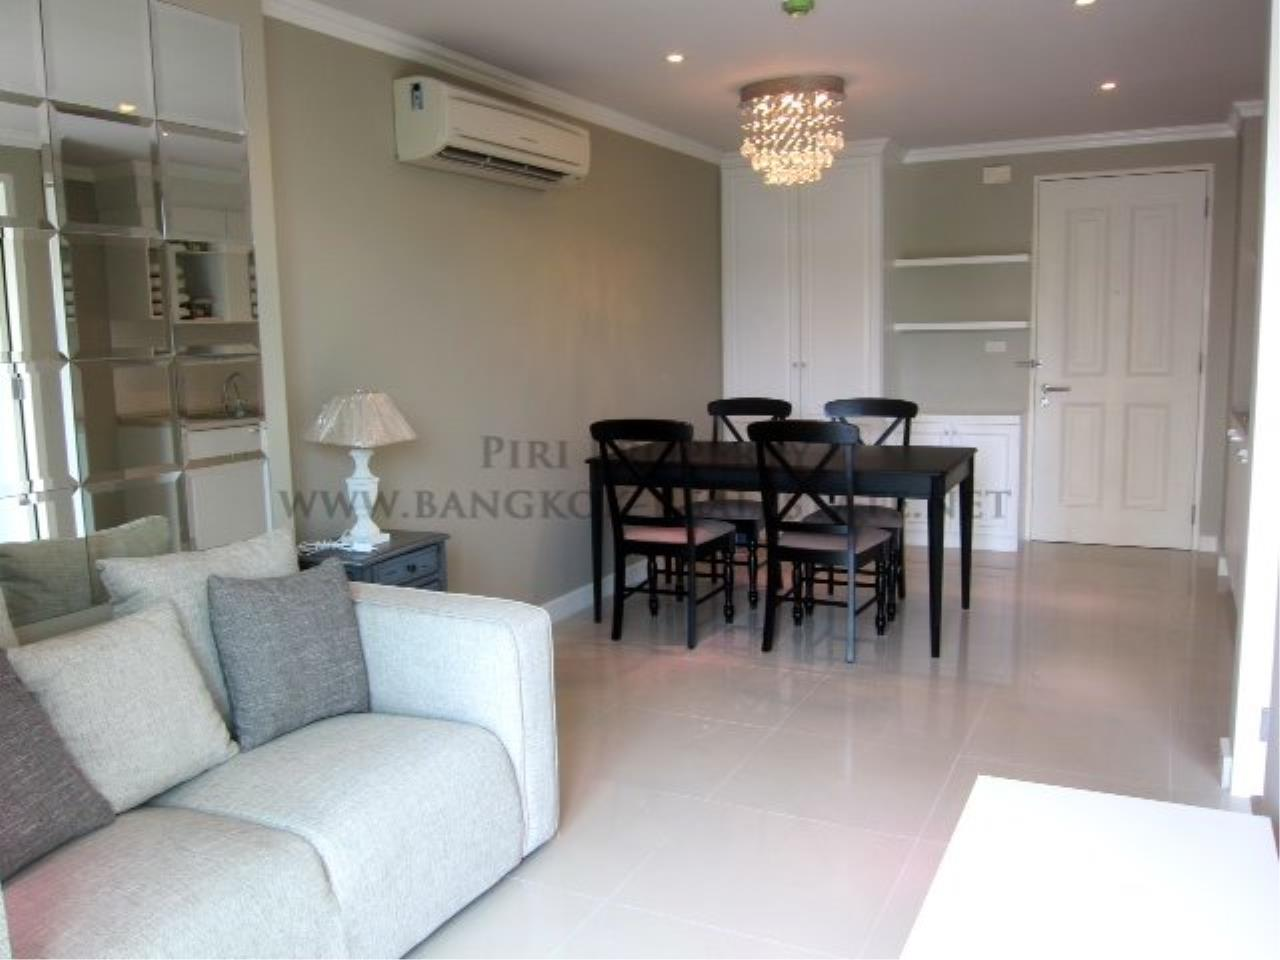 Piri Property Agency's 1 Bedroom - The Clover Thonglor - For rent 1